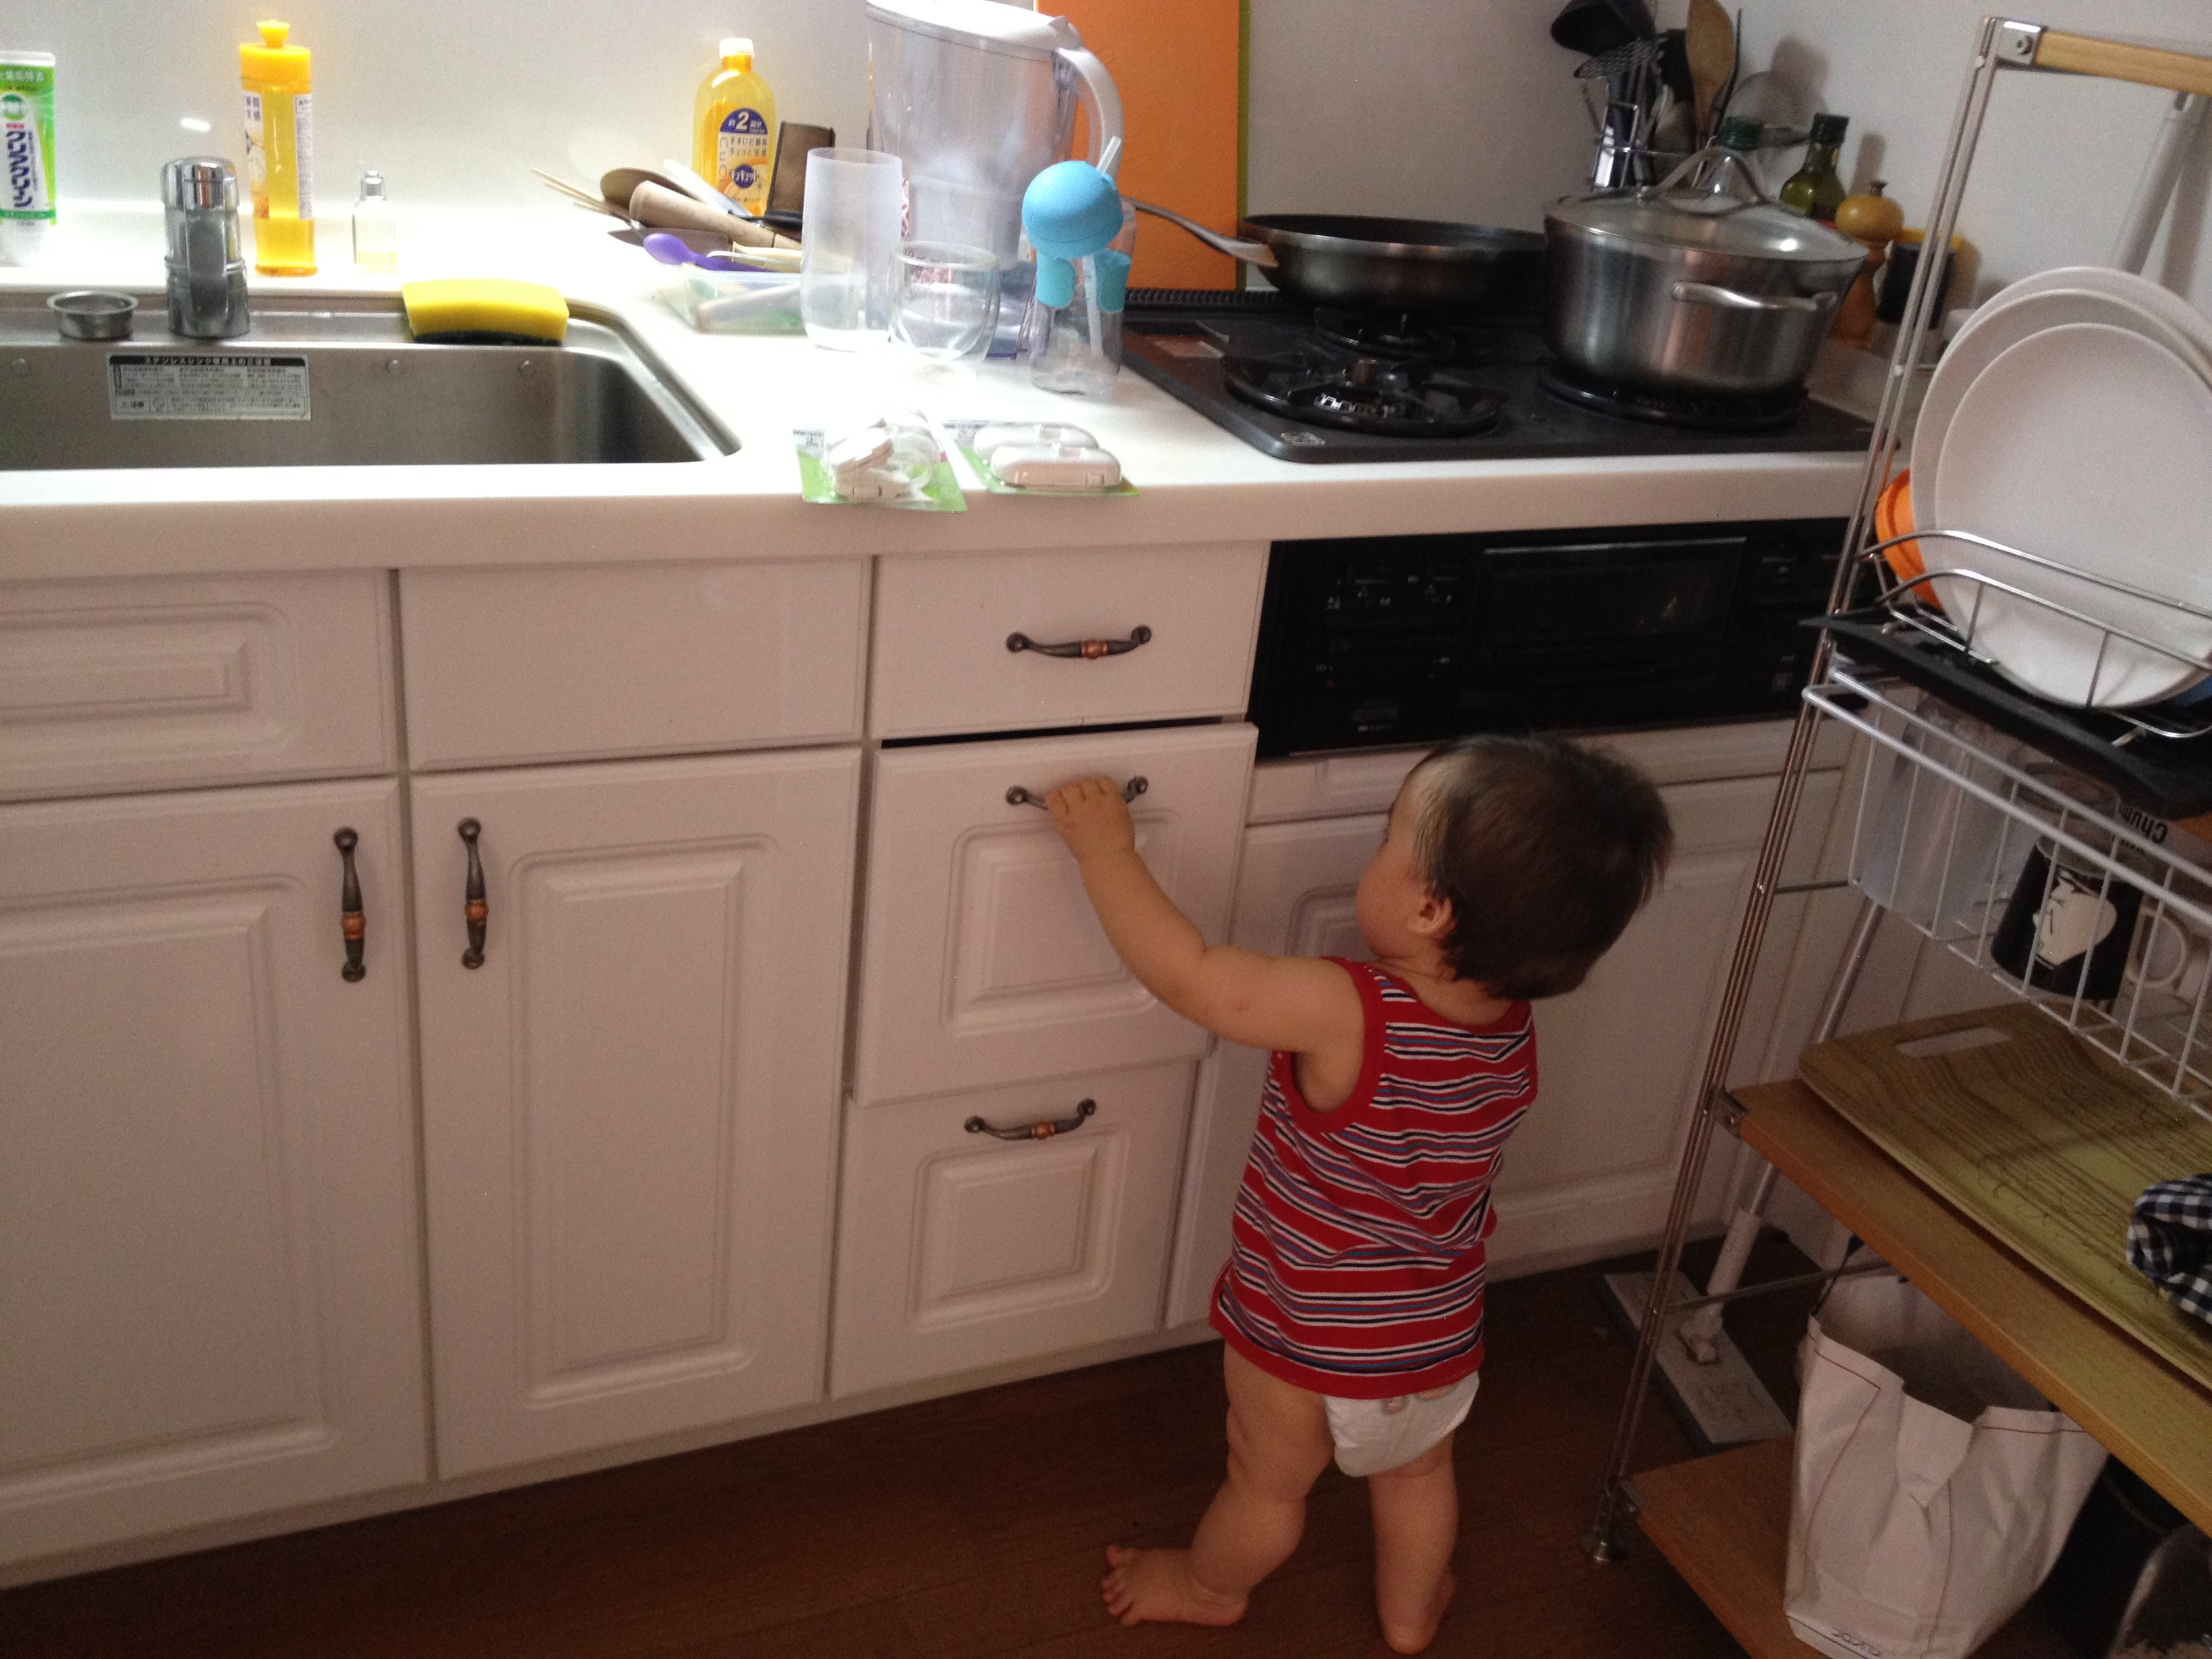 Baby trying to open kitchen cupboards - Tokyo Urban Baby